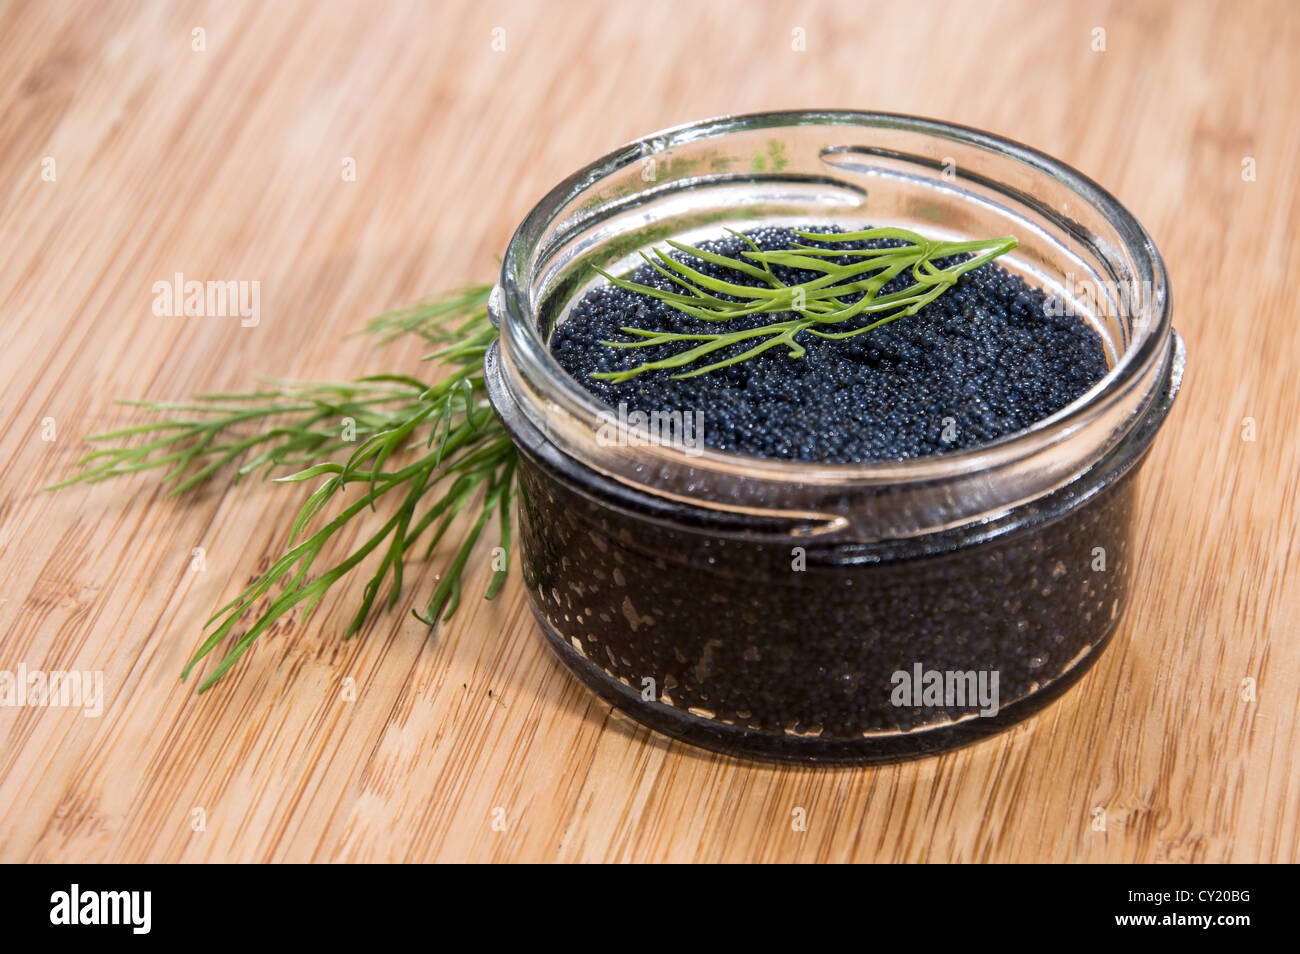 Black Caviar in a glass on wooden background - Stock Image